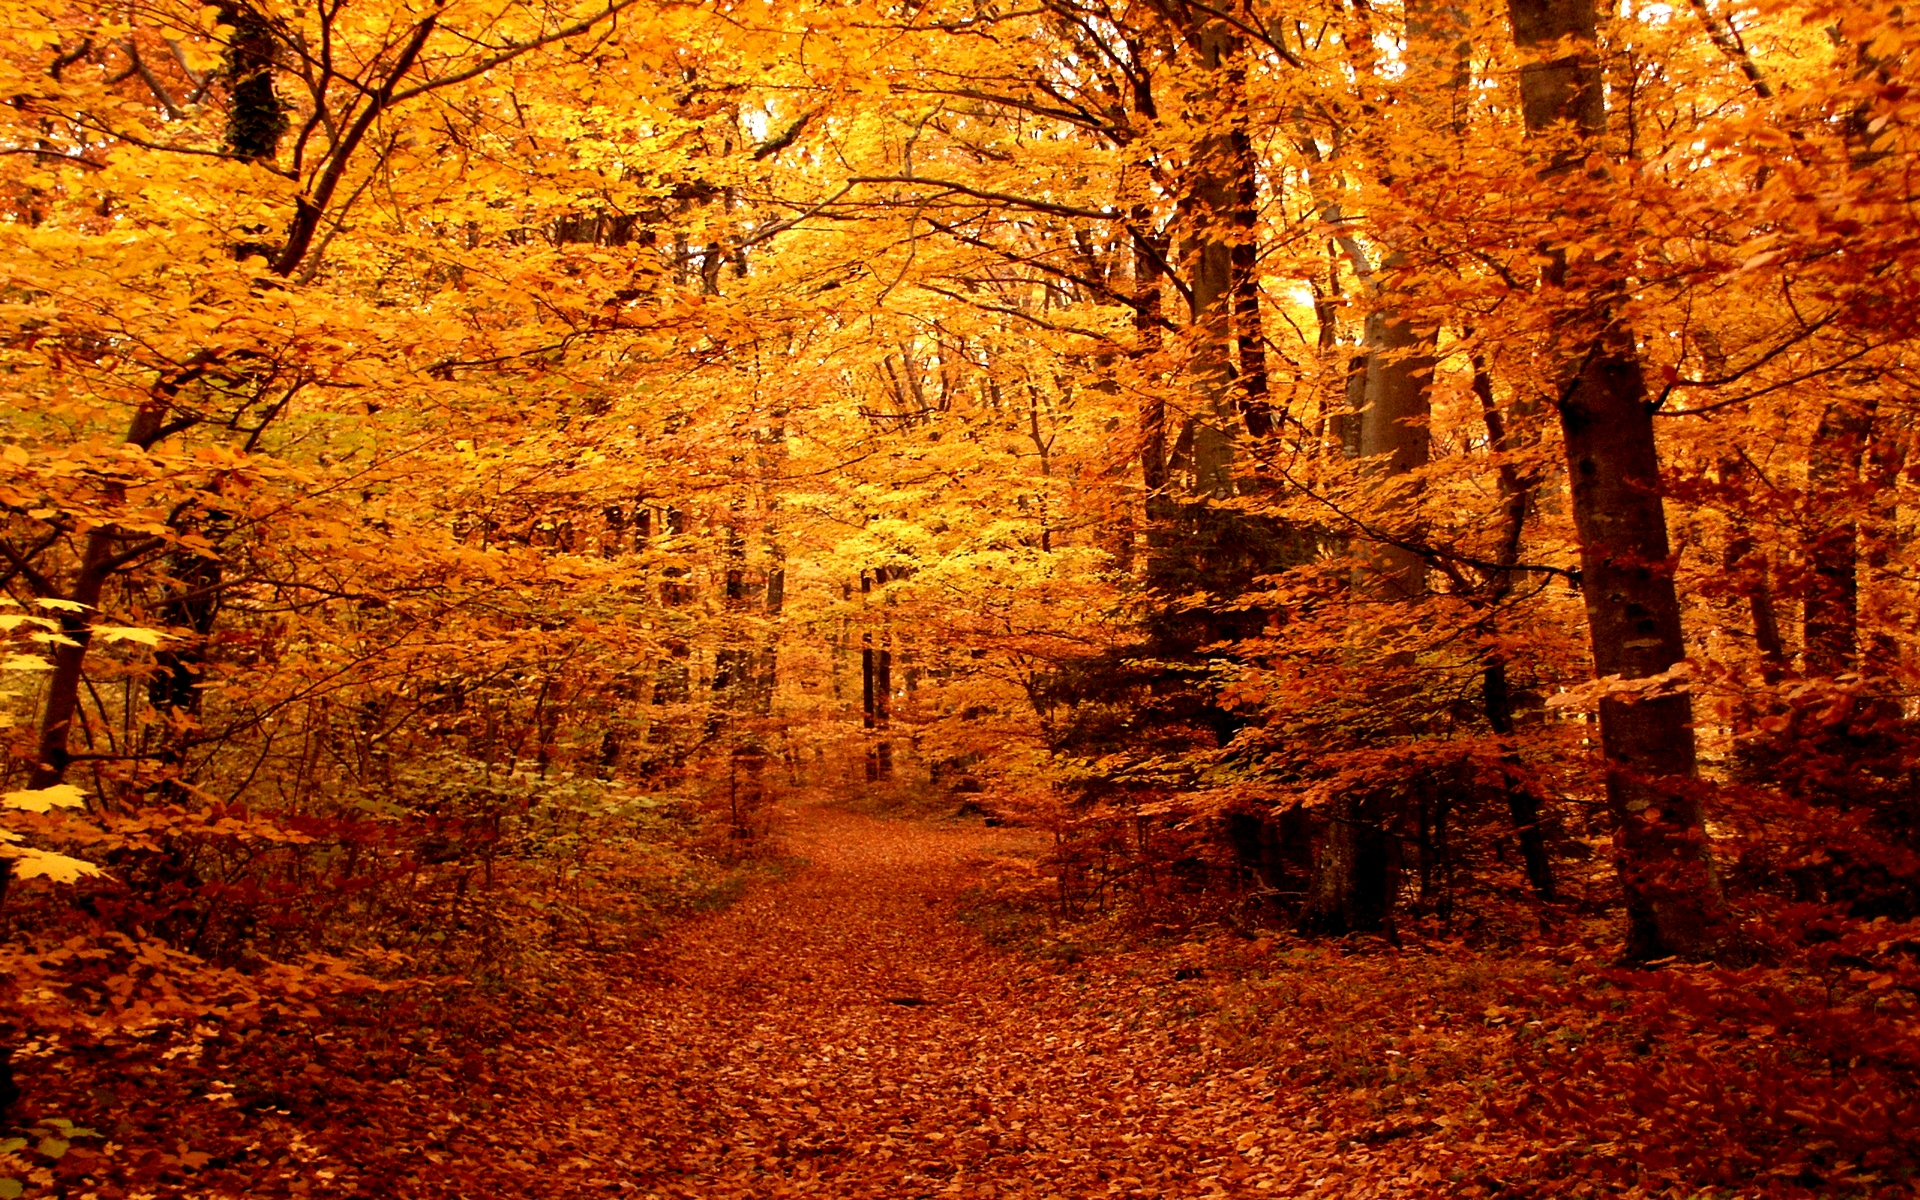 Autumn Forest HD Wallpaper.